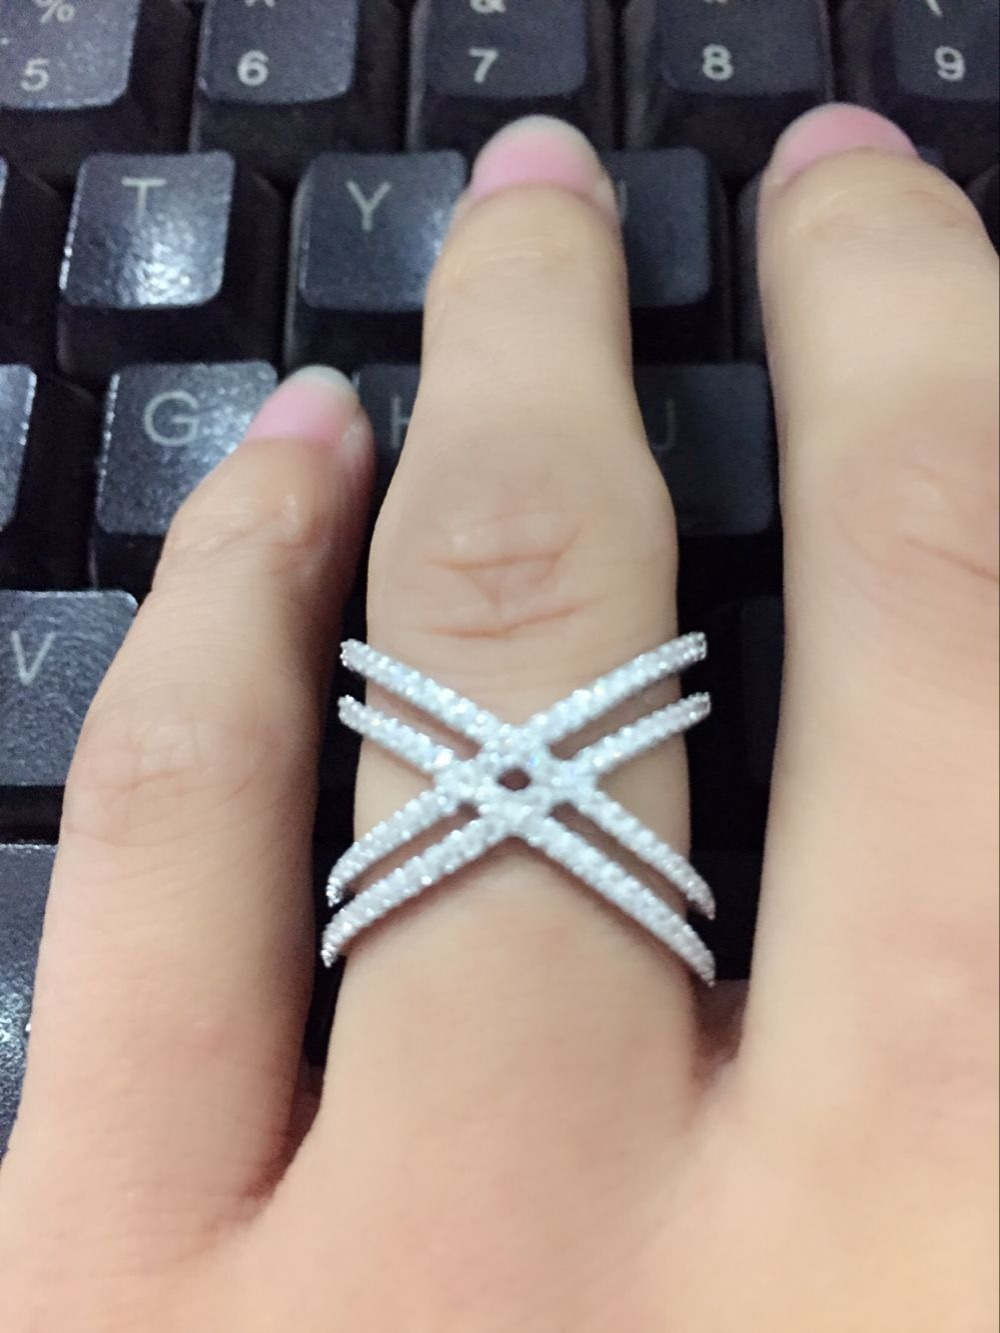 Genuine 925 Sterling silver size 6,7,8,9 micro pave cz double Criss cross X ring for wedding women finger jewelry plus size criss cross high low tee